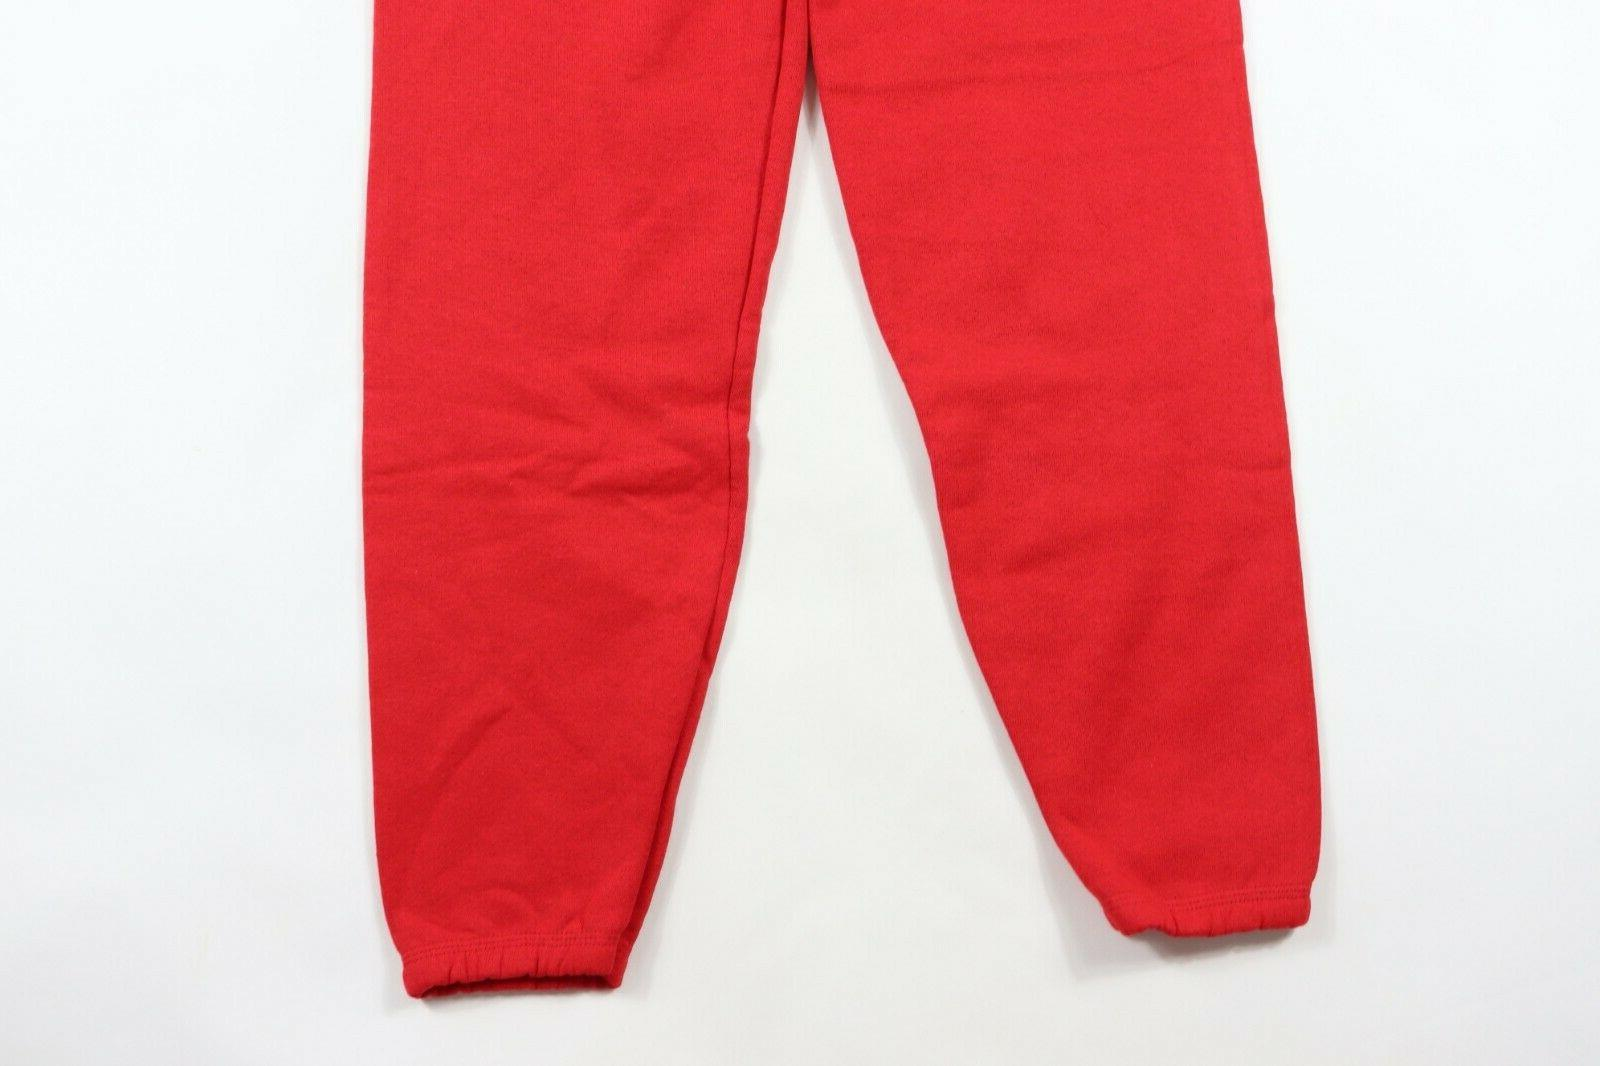 New of the Sweatpants Red